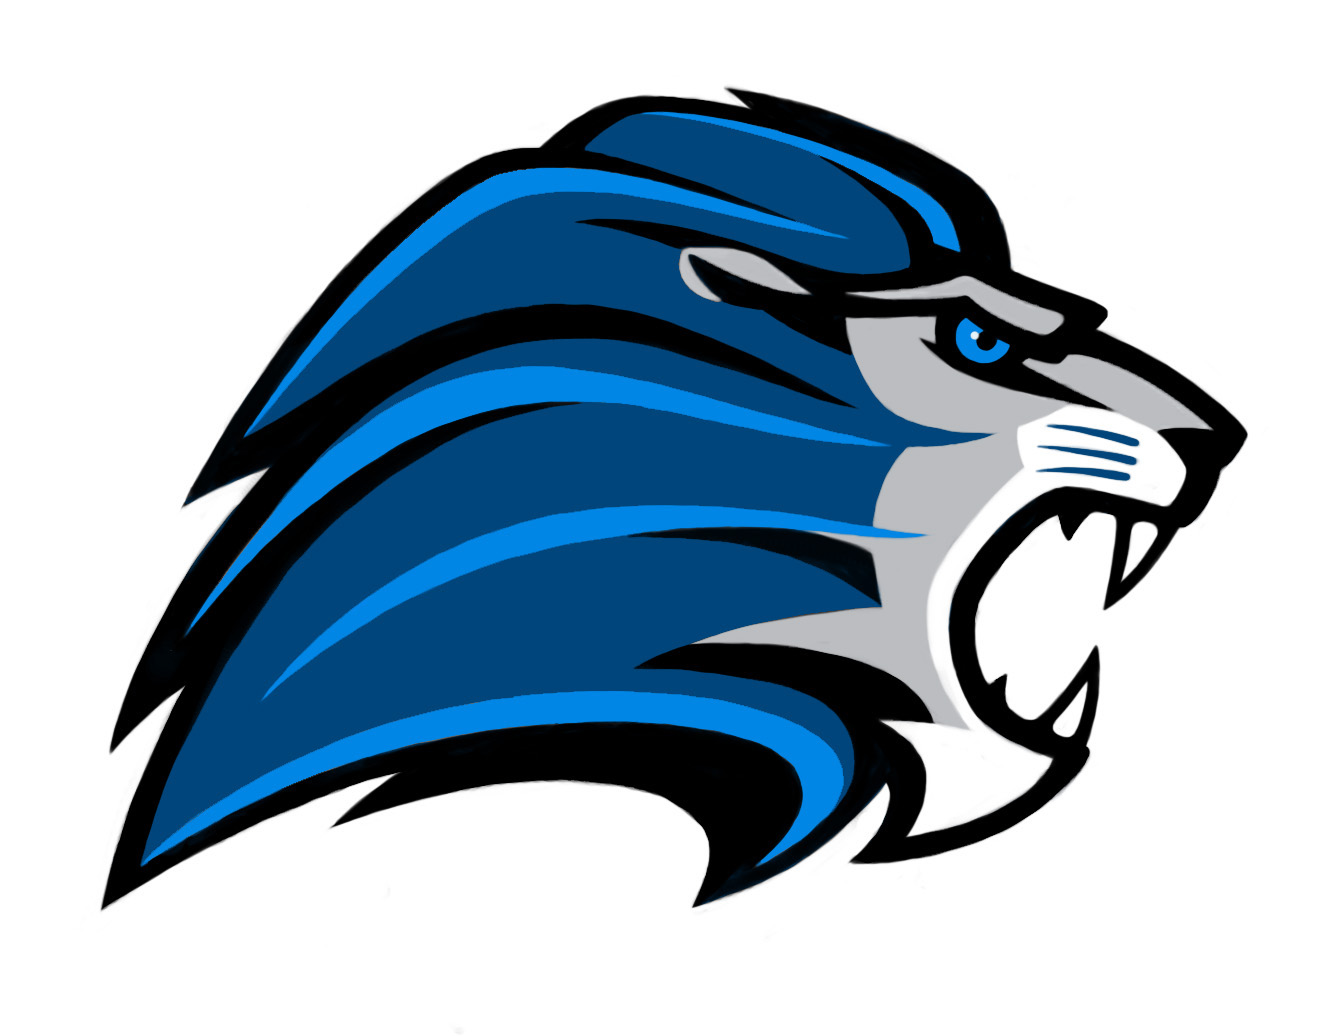 new detroit lion logo concepts chris creamers sports